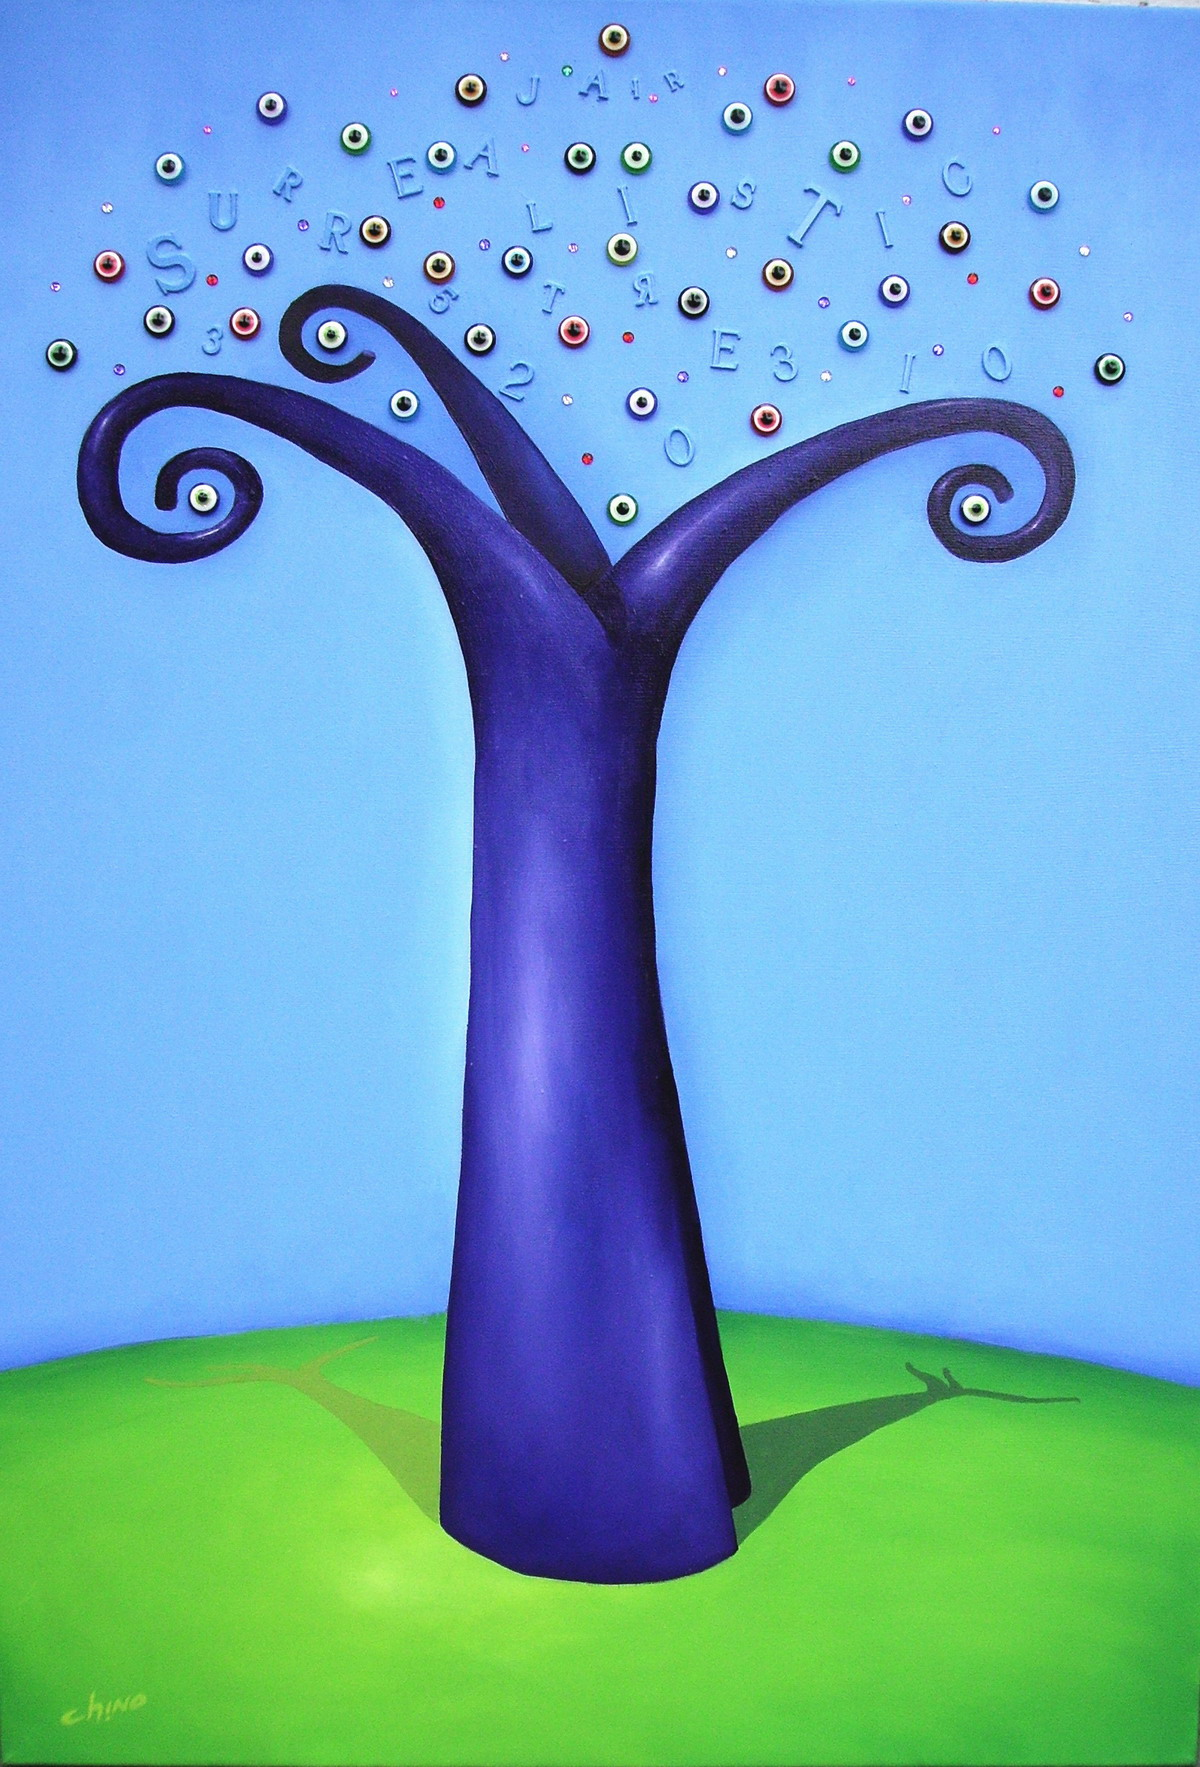 Surrealistic Tree -Técnica mixta sobre tela -100 x 70 cm.- 2014.